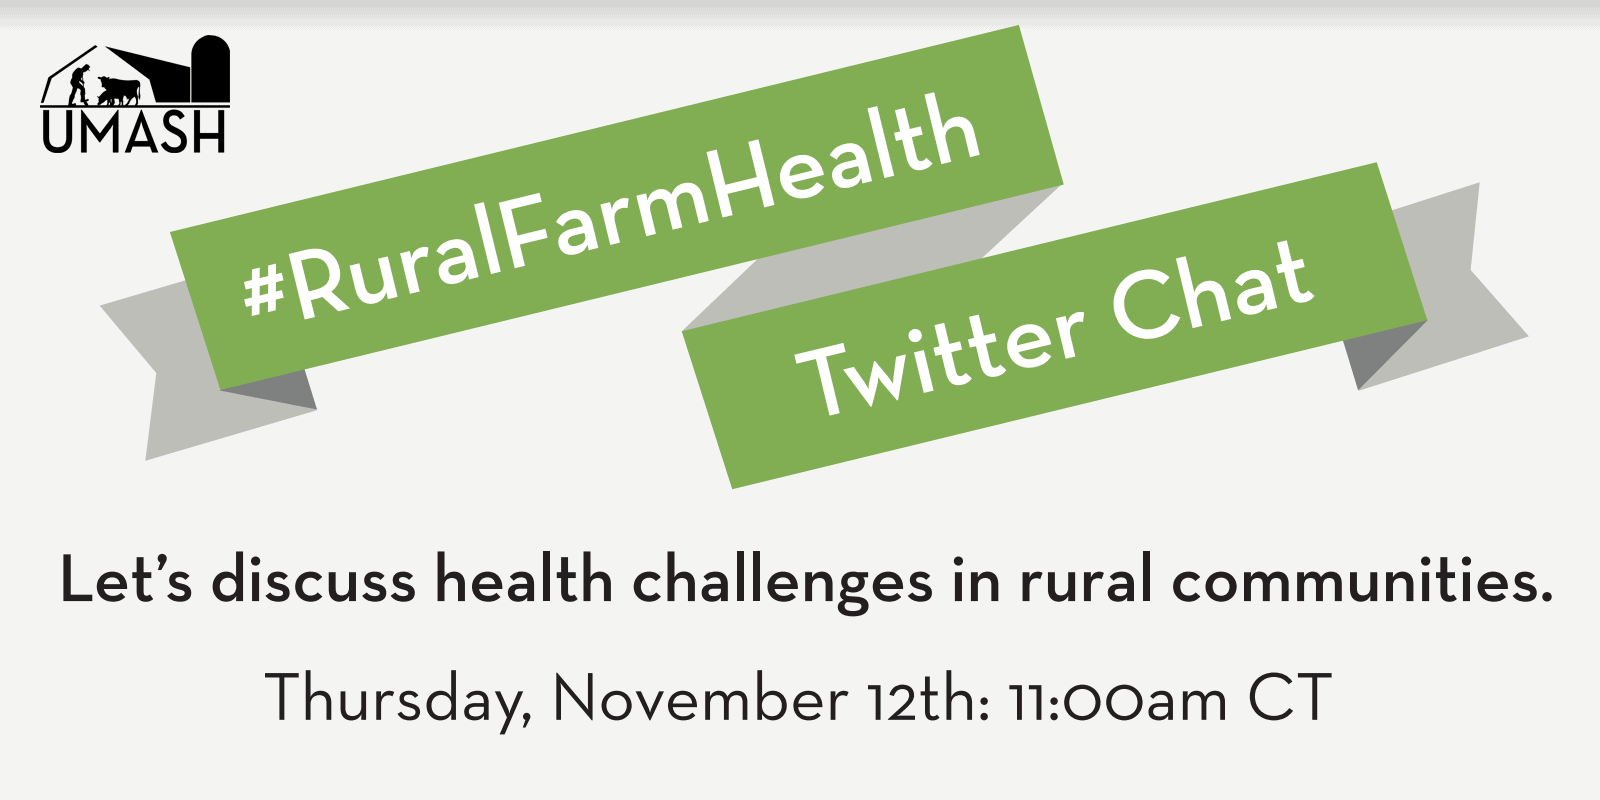 Rural Farm Health Promotional Card